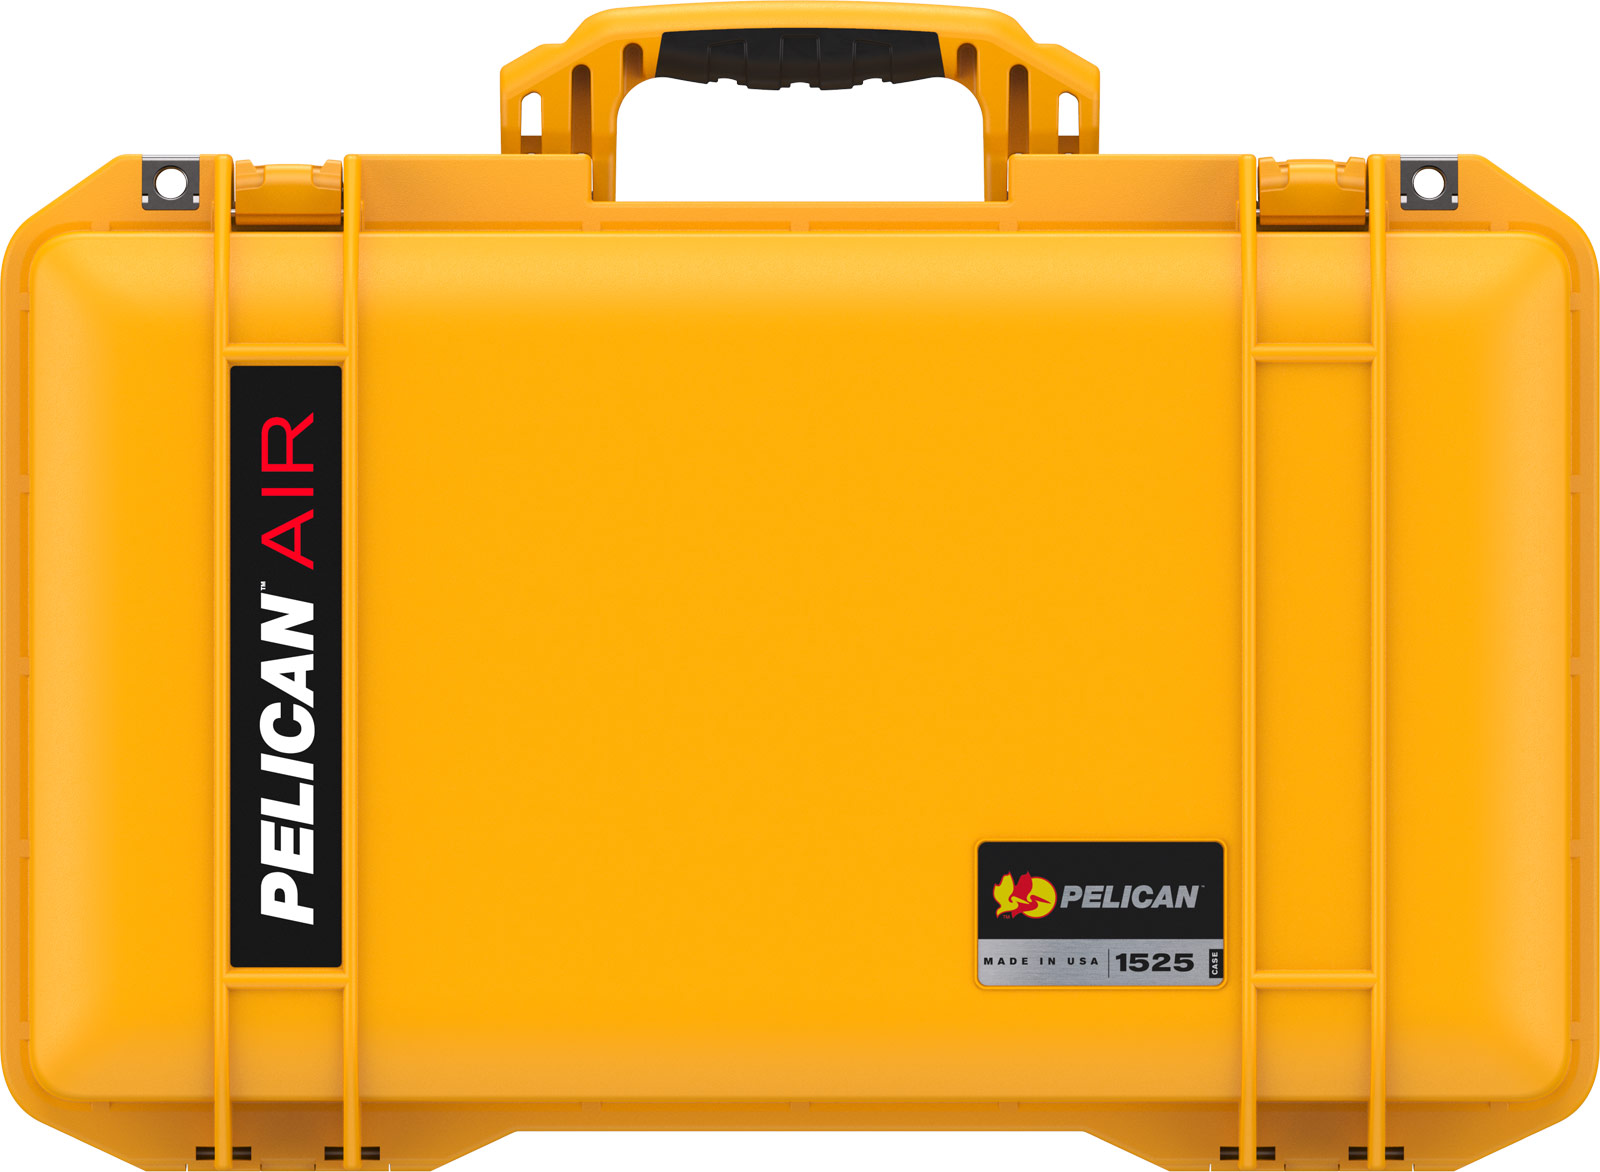 pelican yellow case 1525 air cases watertight